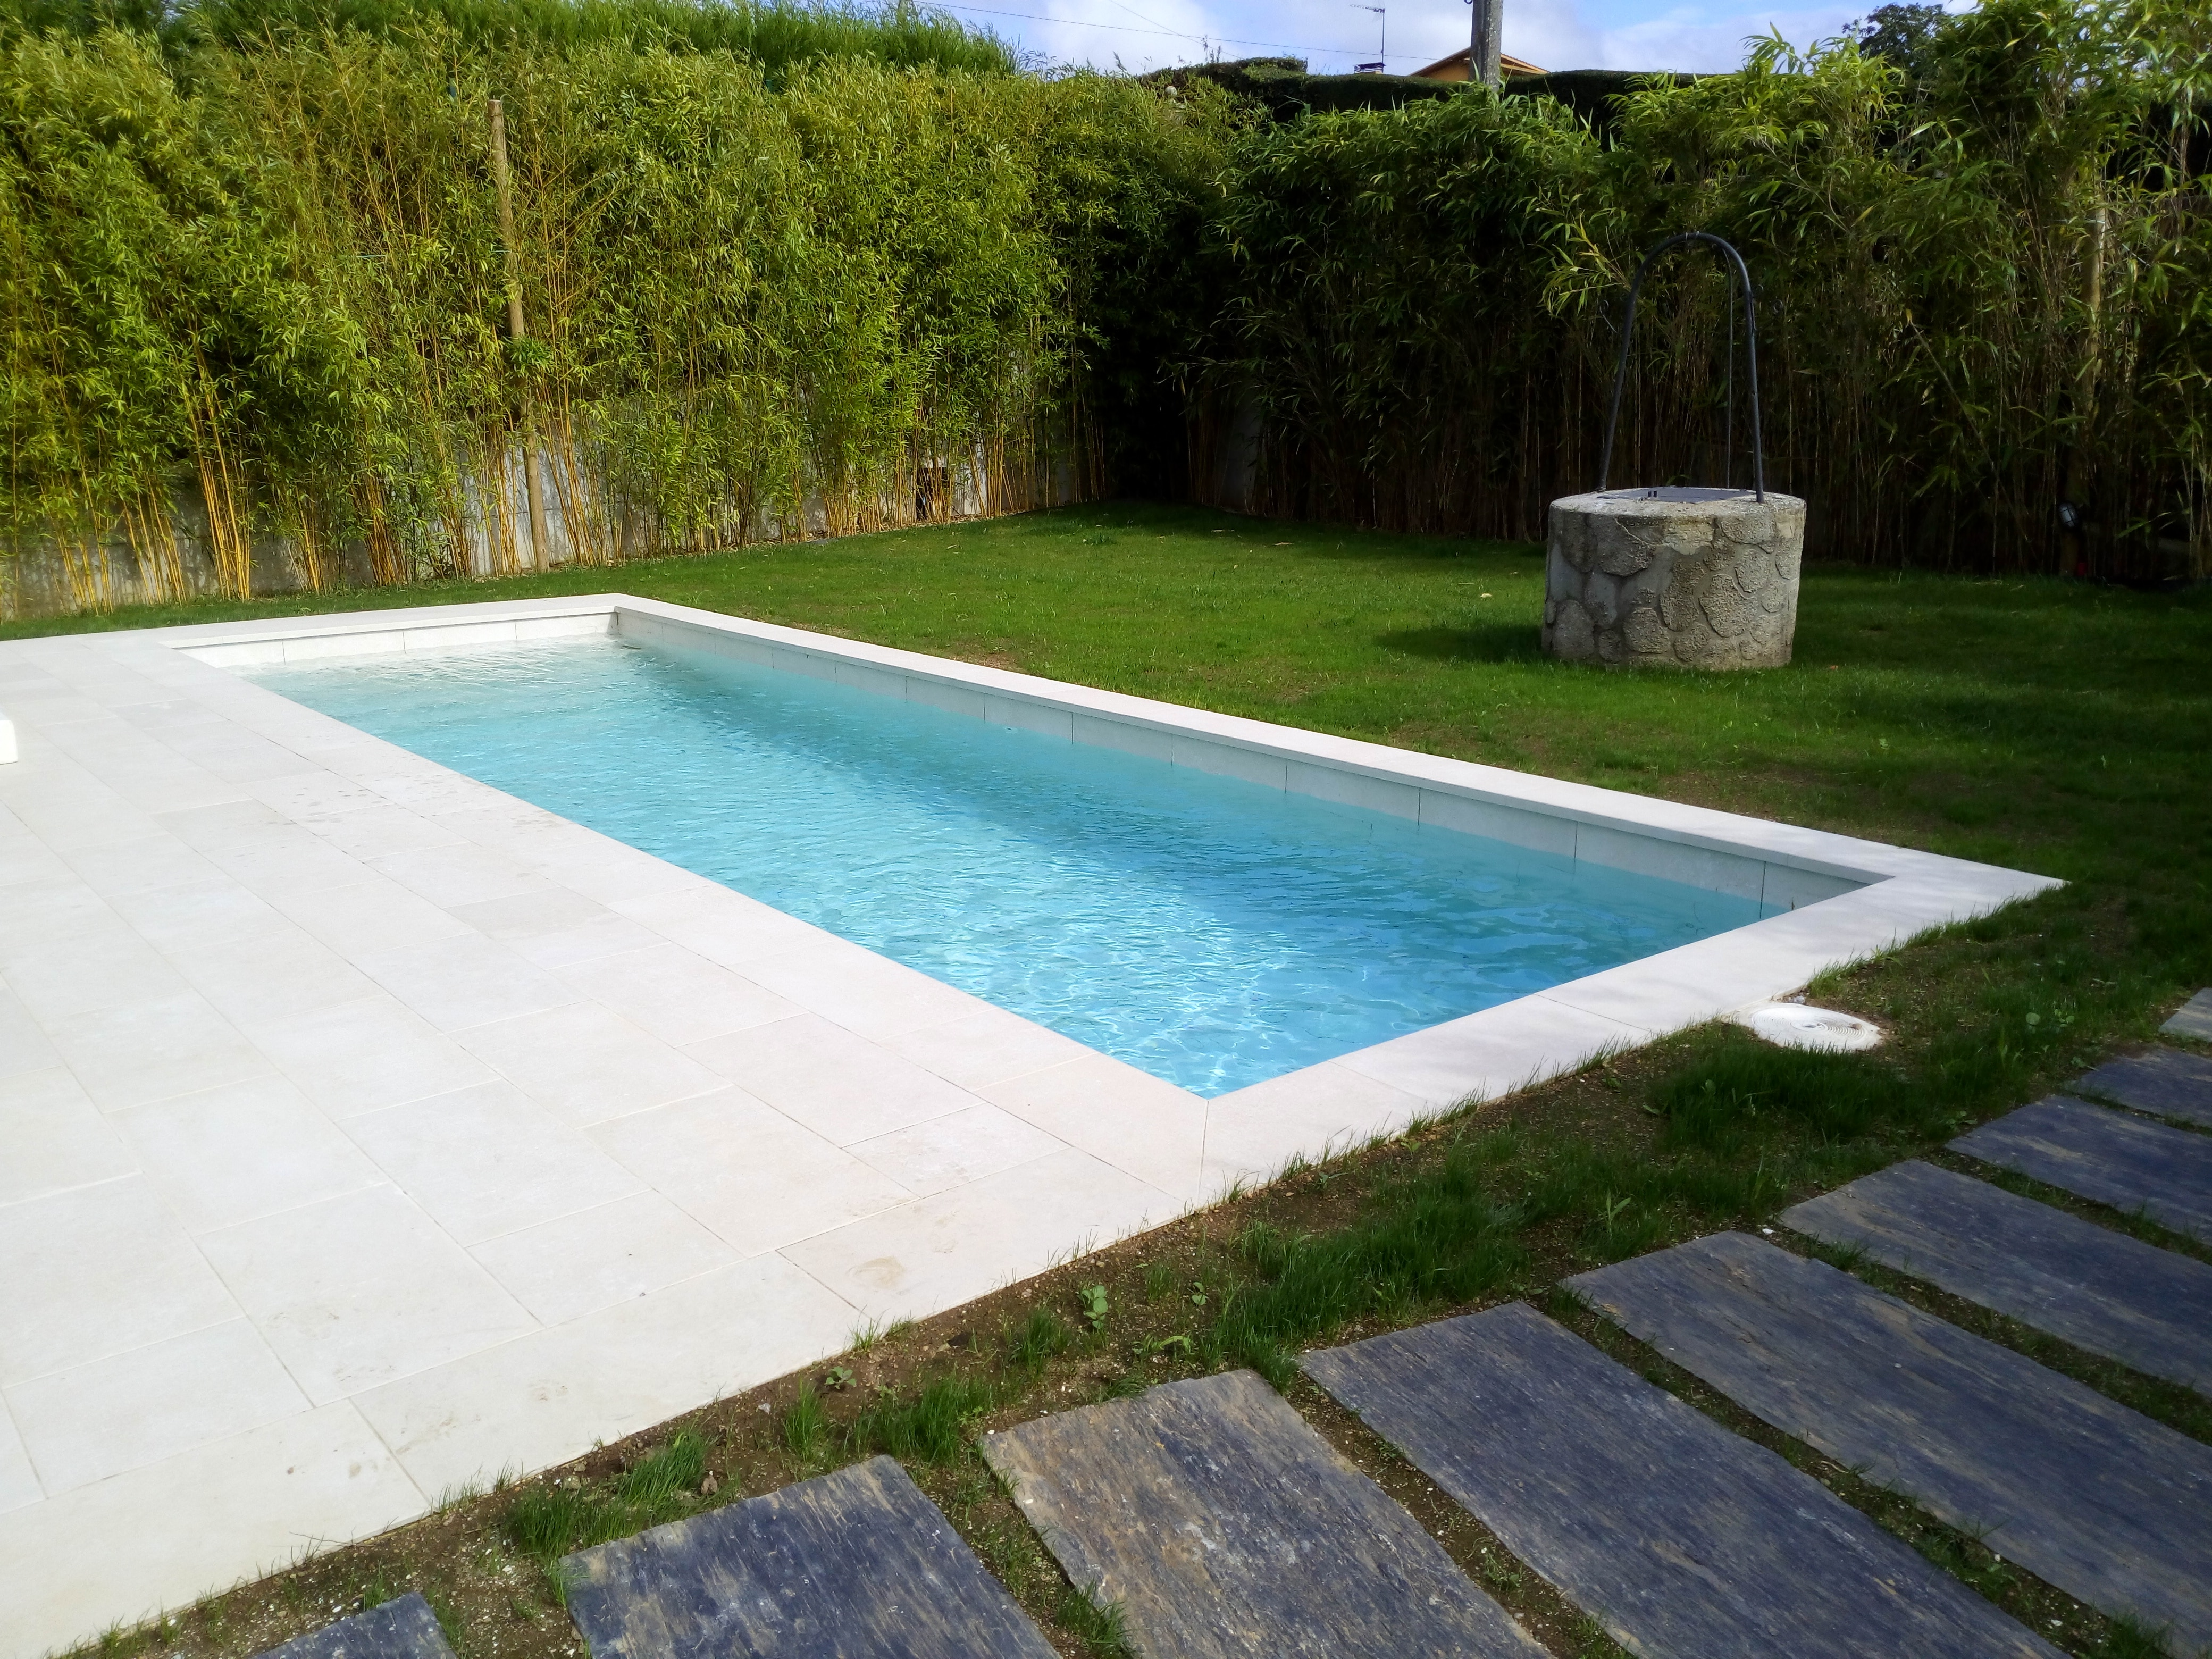 Como construir piscina de hormigon for Materiales para construir una piscina